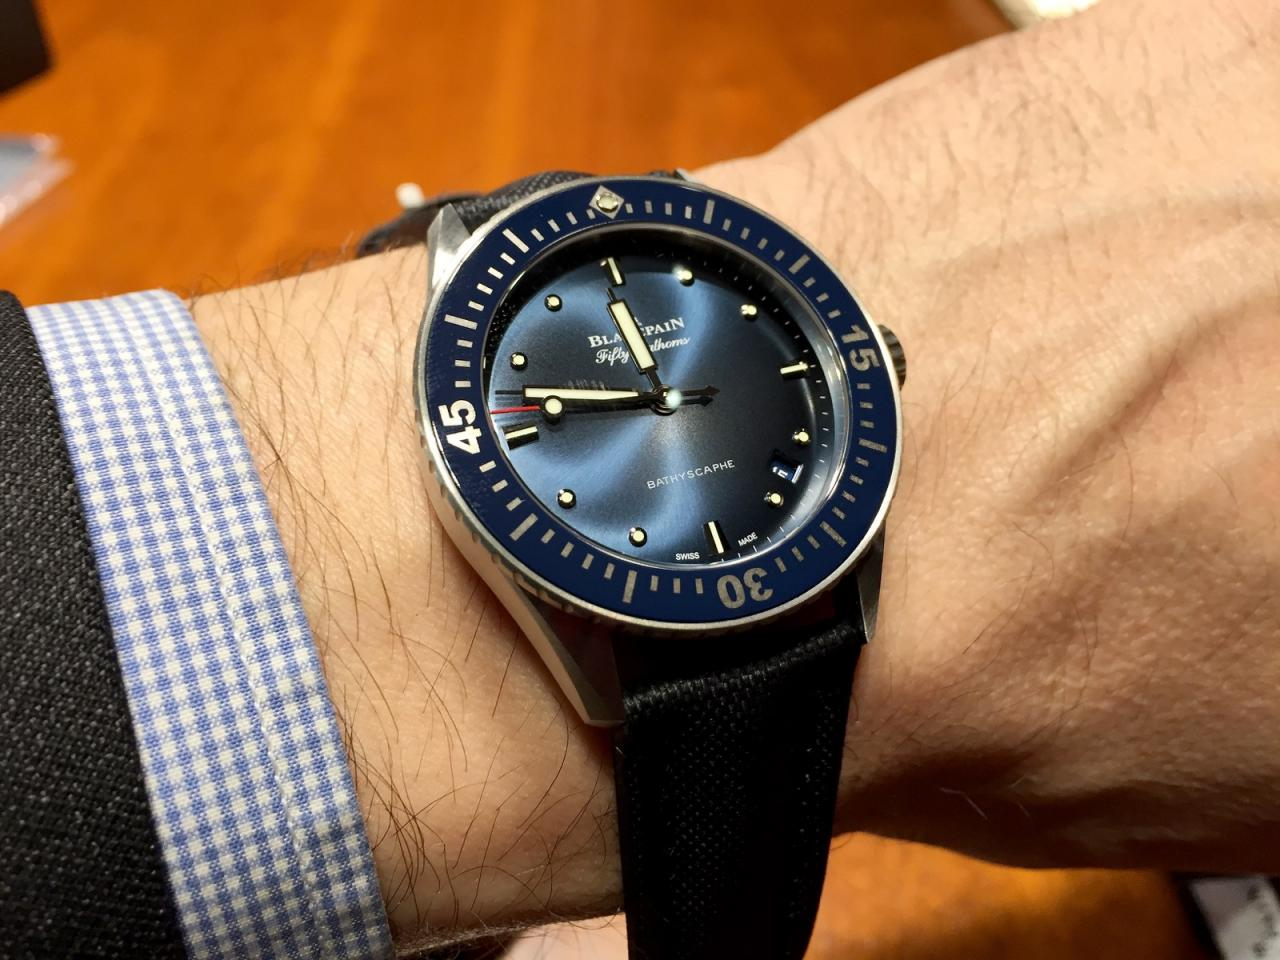 Blancpain Fifthy Fathoms Batyscaphe 38 mm